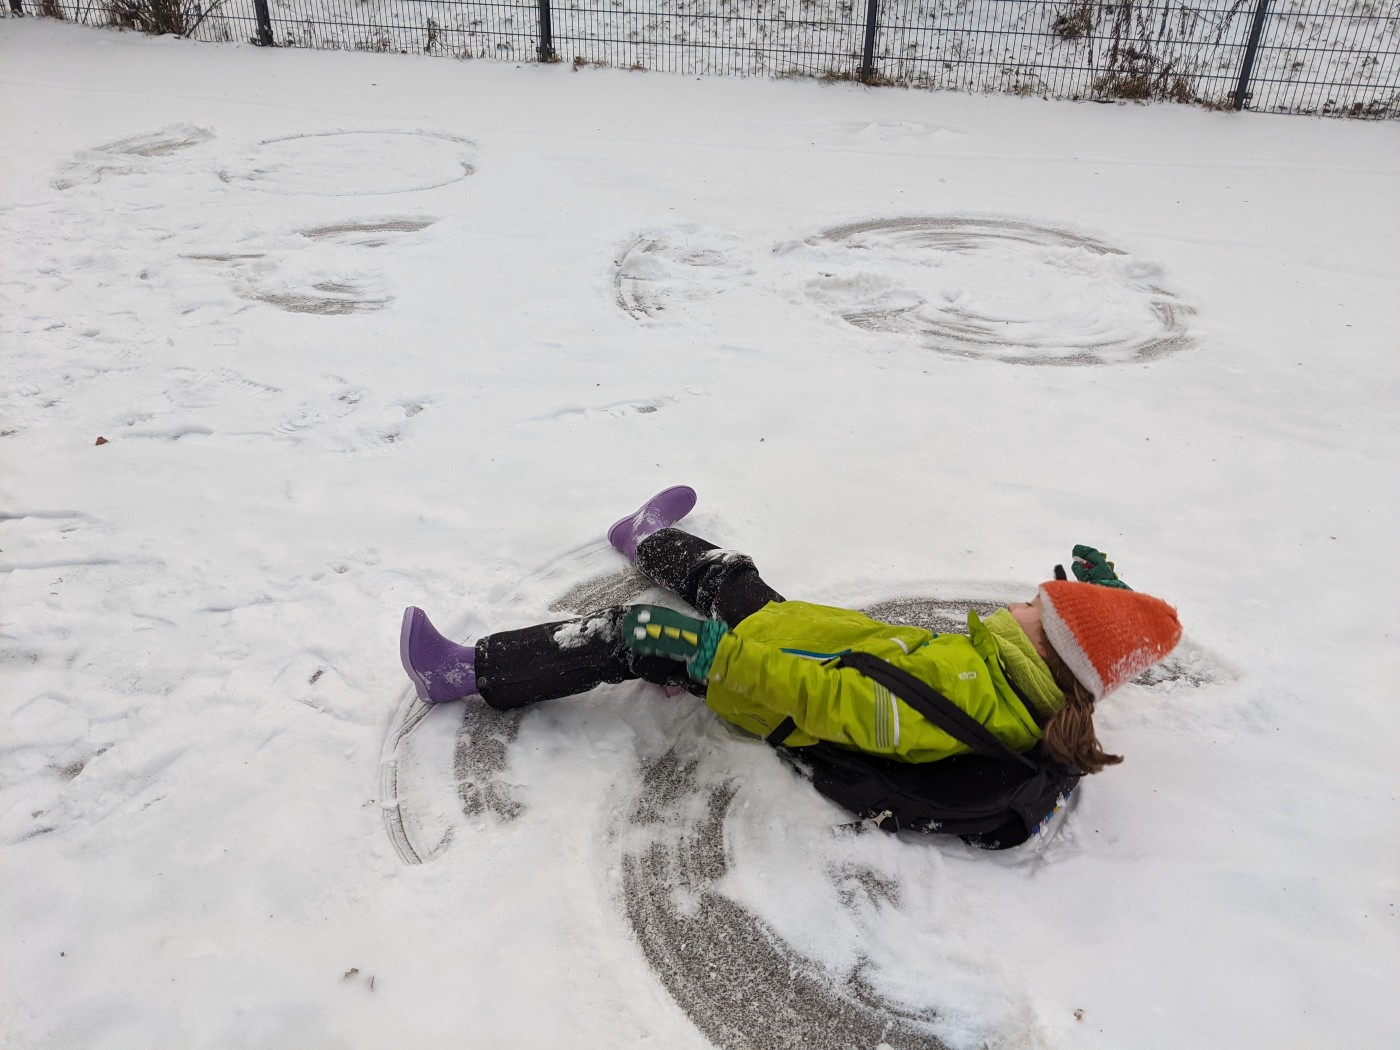 A child making a snow angel on a concrete basketball court.